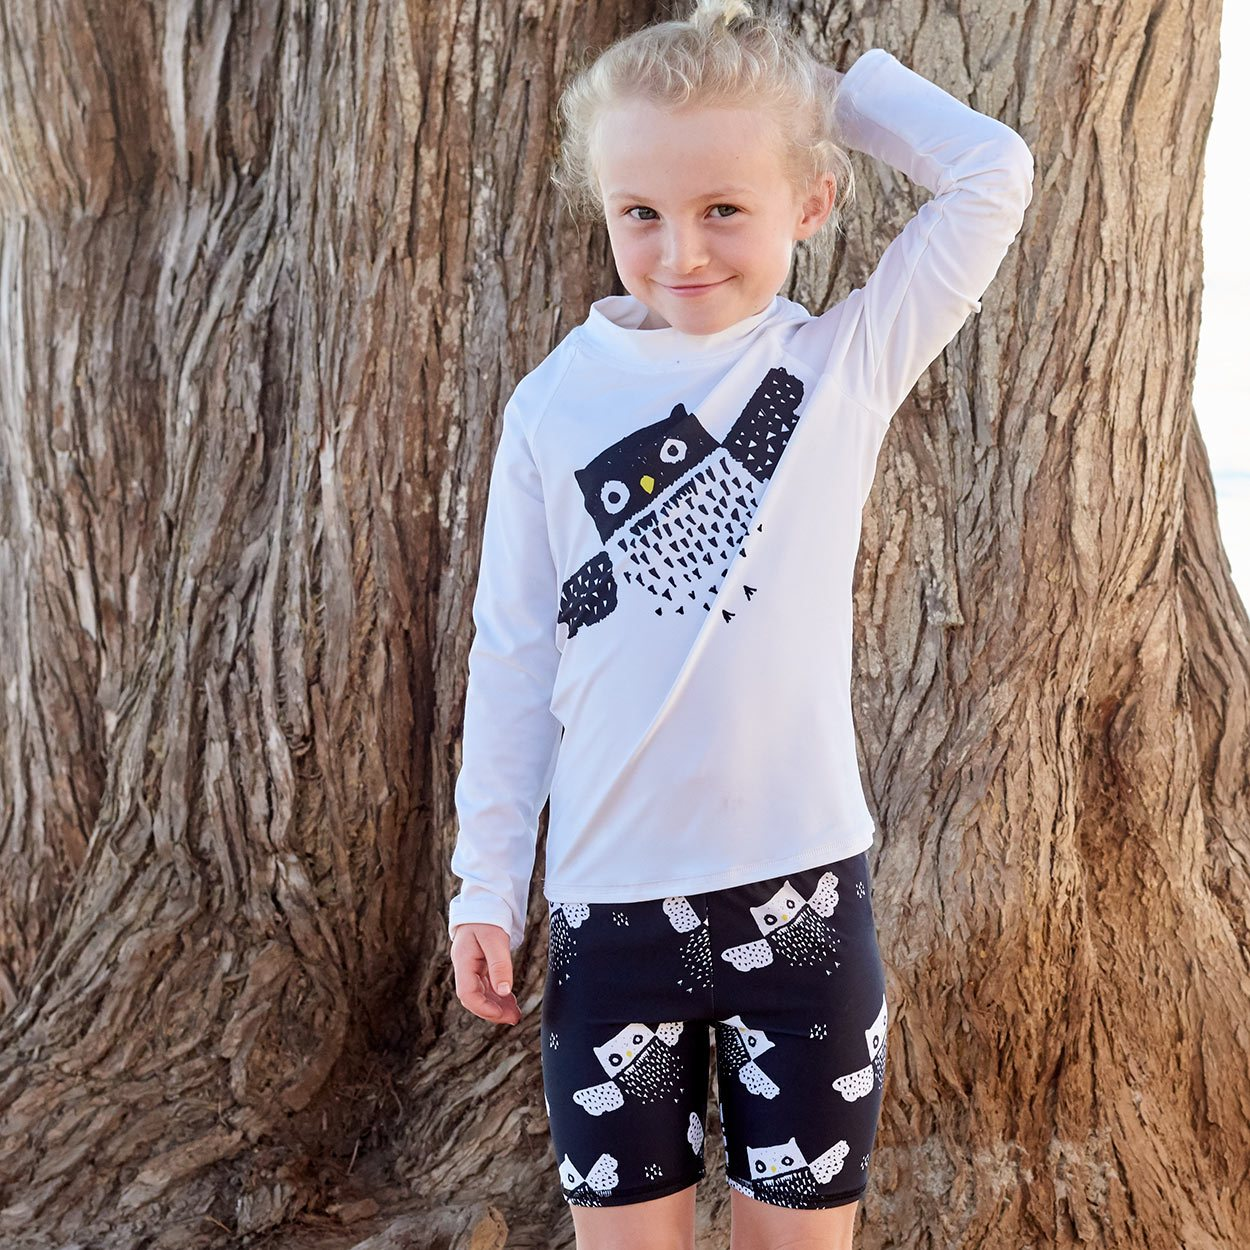 Owls Sunblocker Shorts Upf50 Kids Boys Girls Size 2 12 Black White Unisex Little Girl Fixing Her Ponytail Sunpoplife